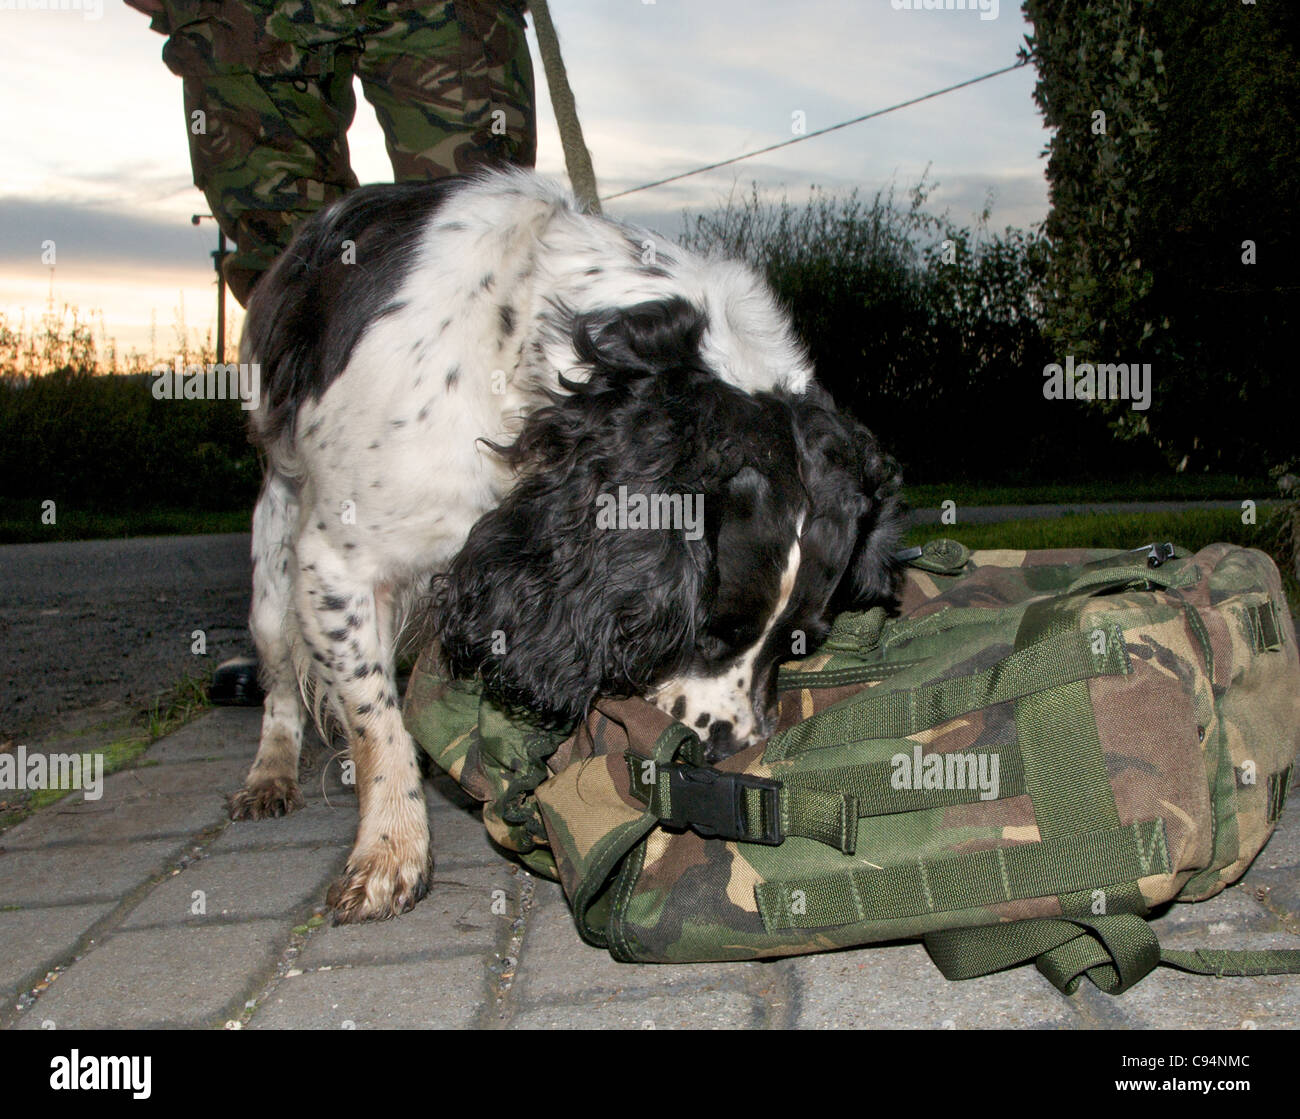 Sniffer dogs are used by police and the military to search for drugs and explosives - this is a Springer Spaniel - Stock Image